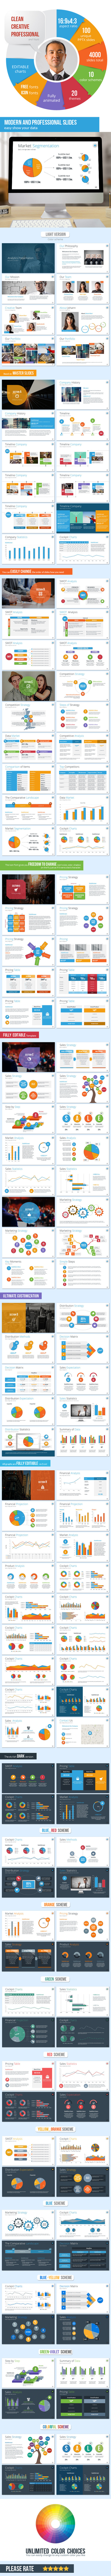 GraphicRiver Analytics PowerPoint Presentation Template 10148653